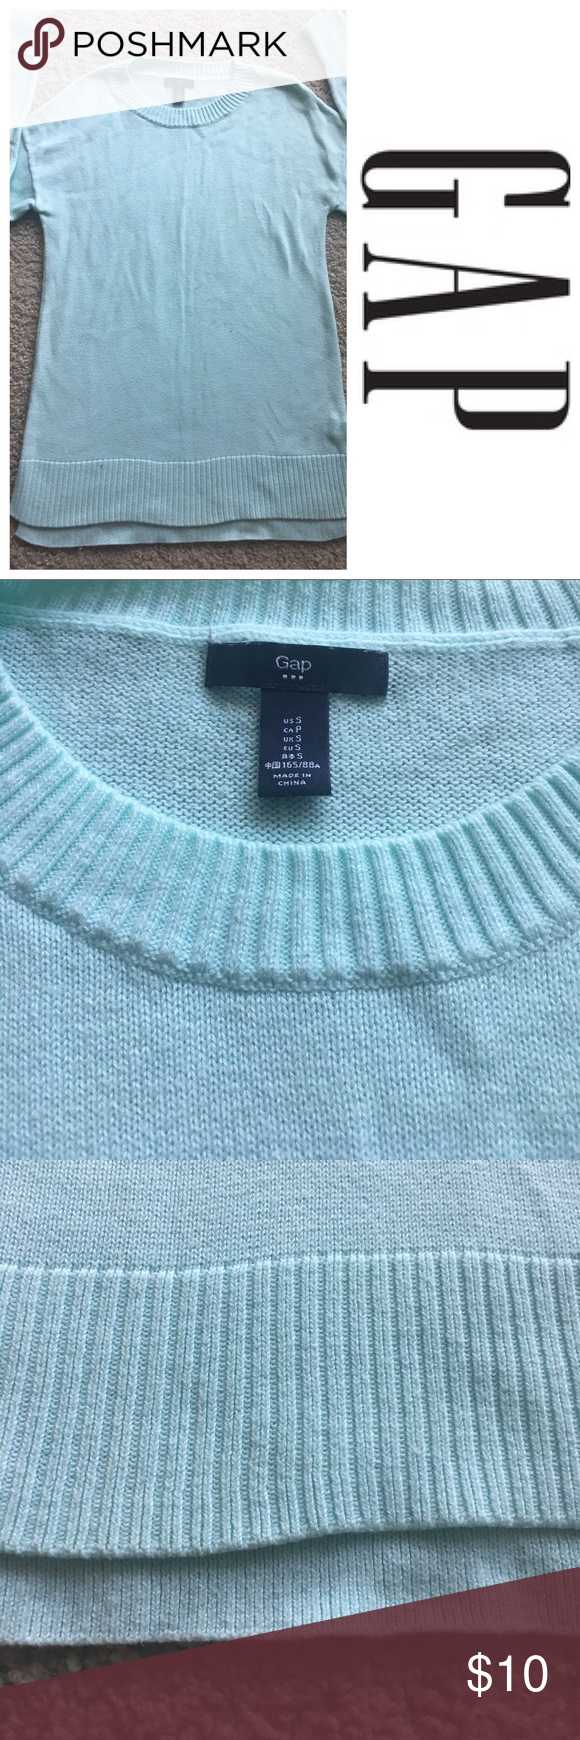 Gap thin blue sweater | Blue sweaters, Conditioning and Teal